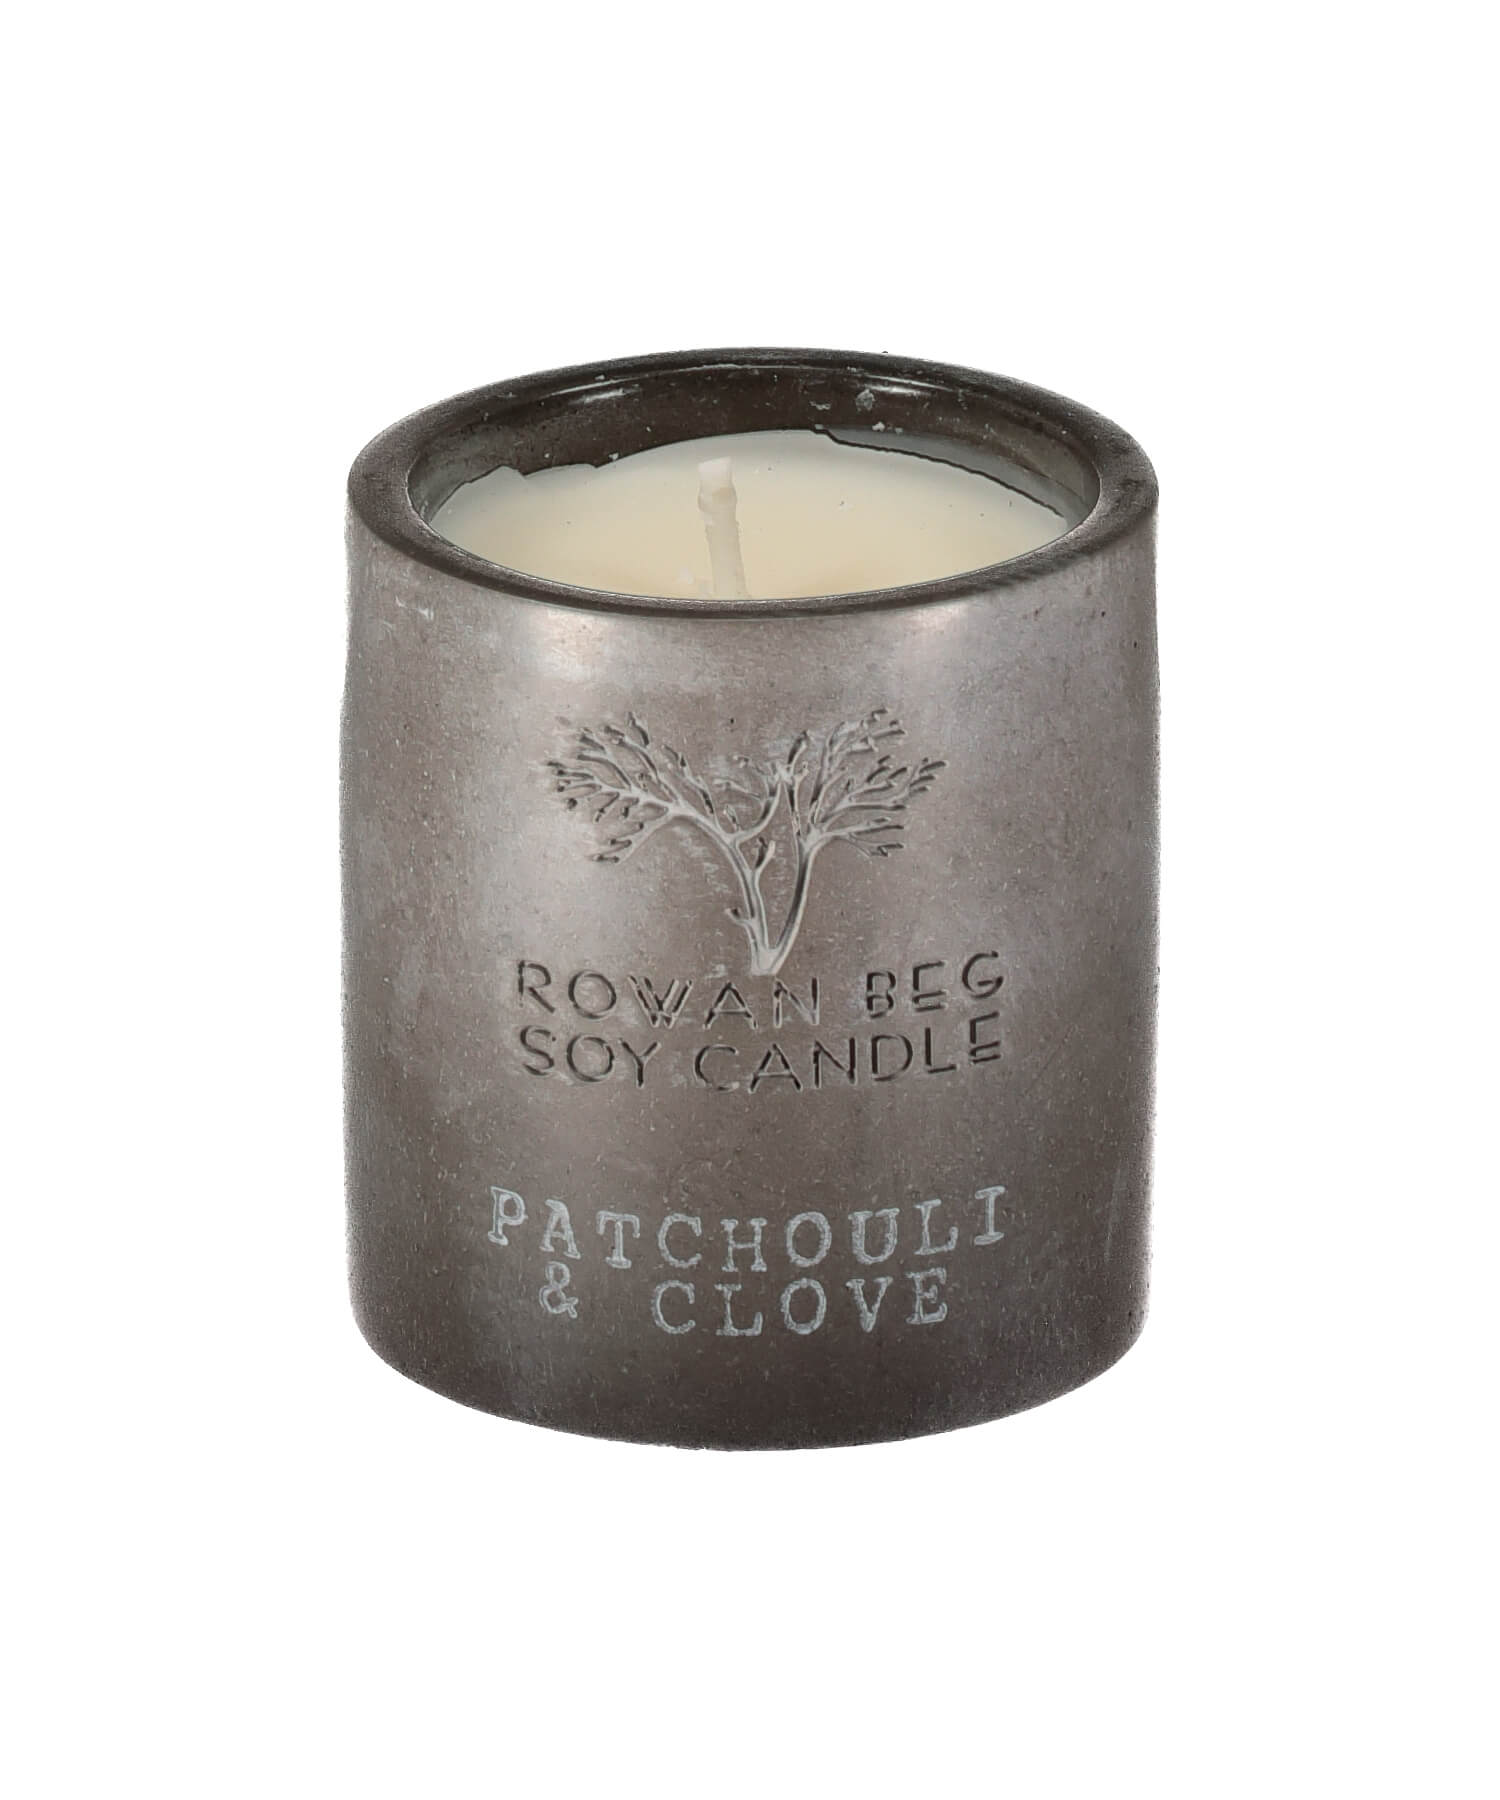 Urban Candle - Patchouli & Clove - [Rowan Beg] - Home Fragrance - Irish Gifts